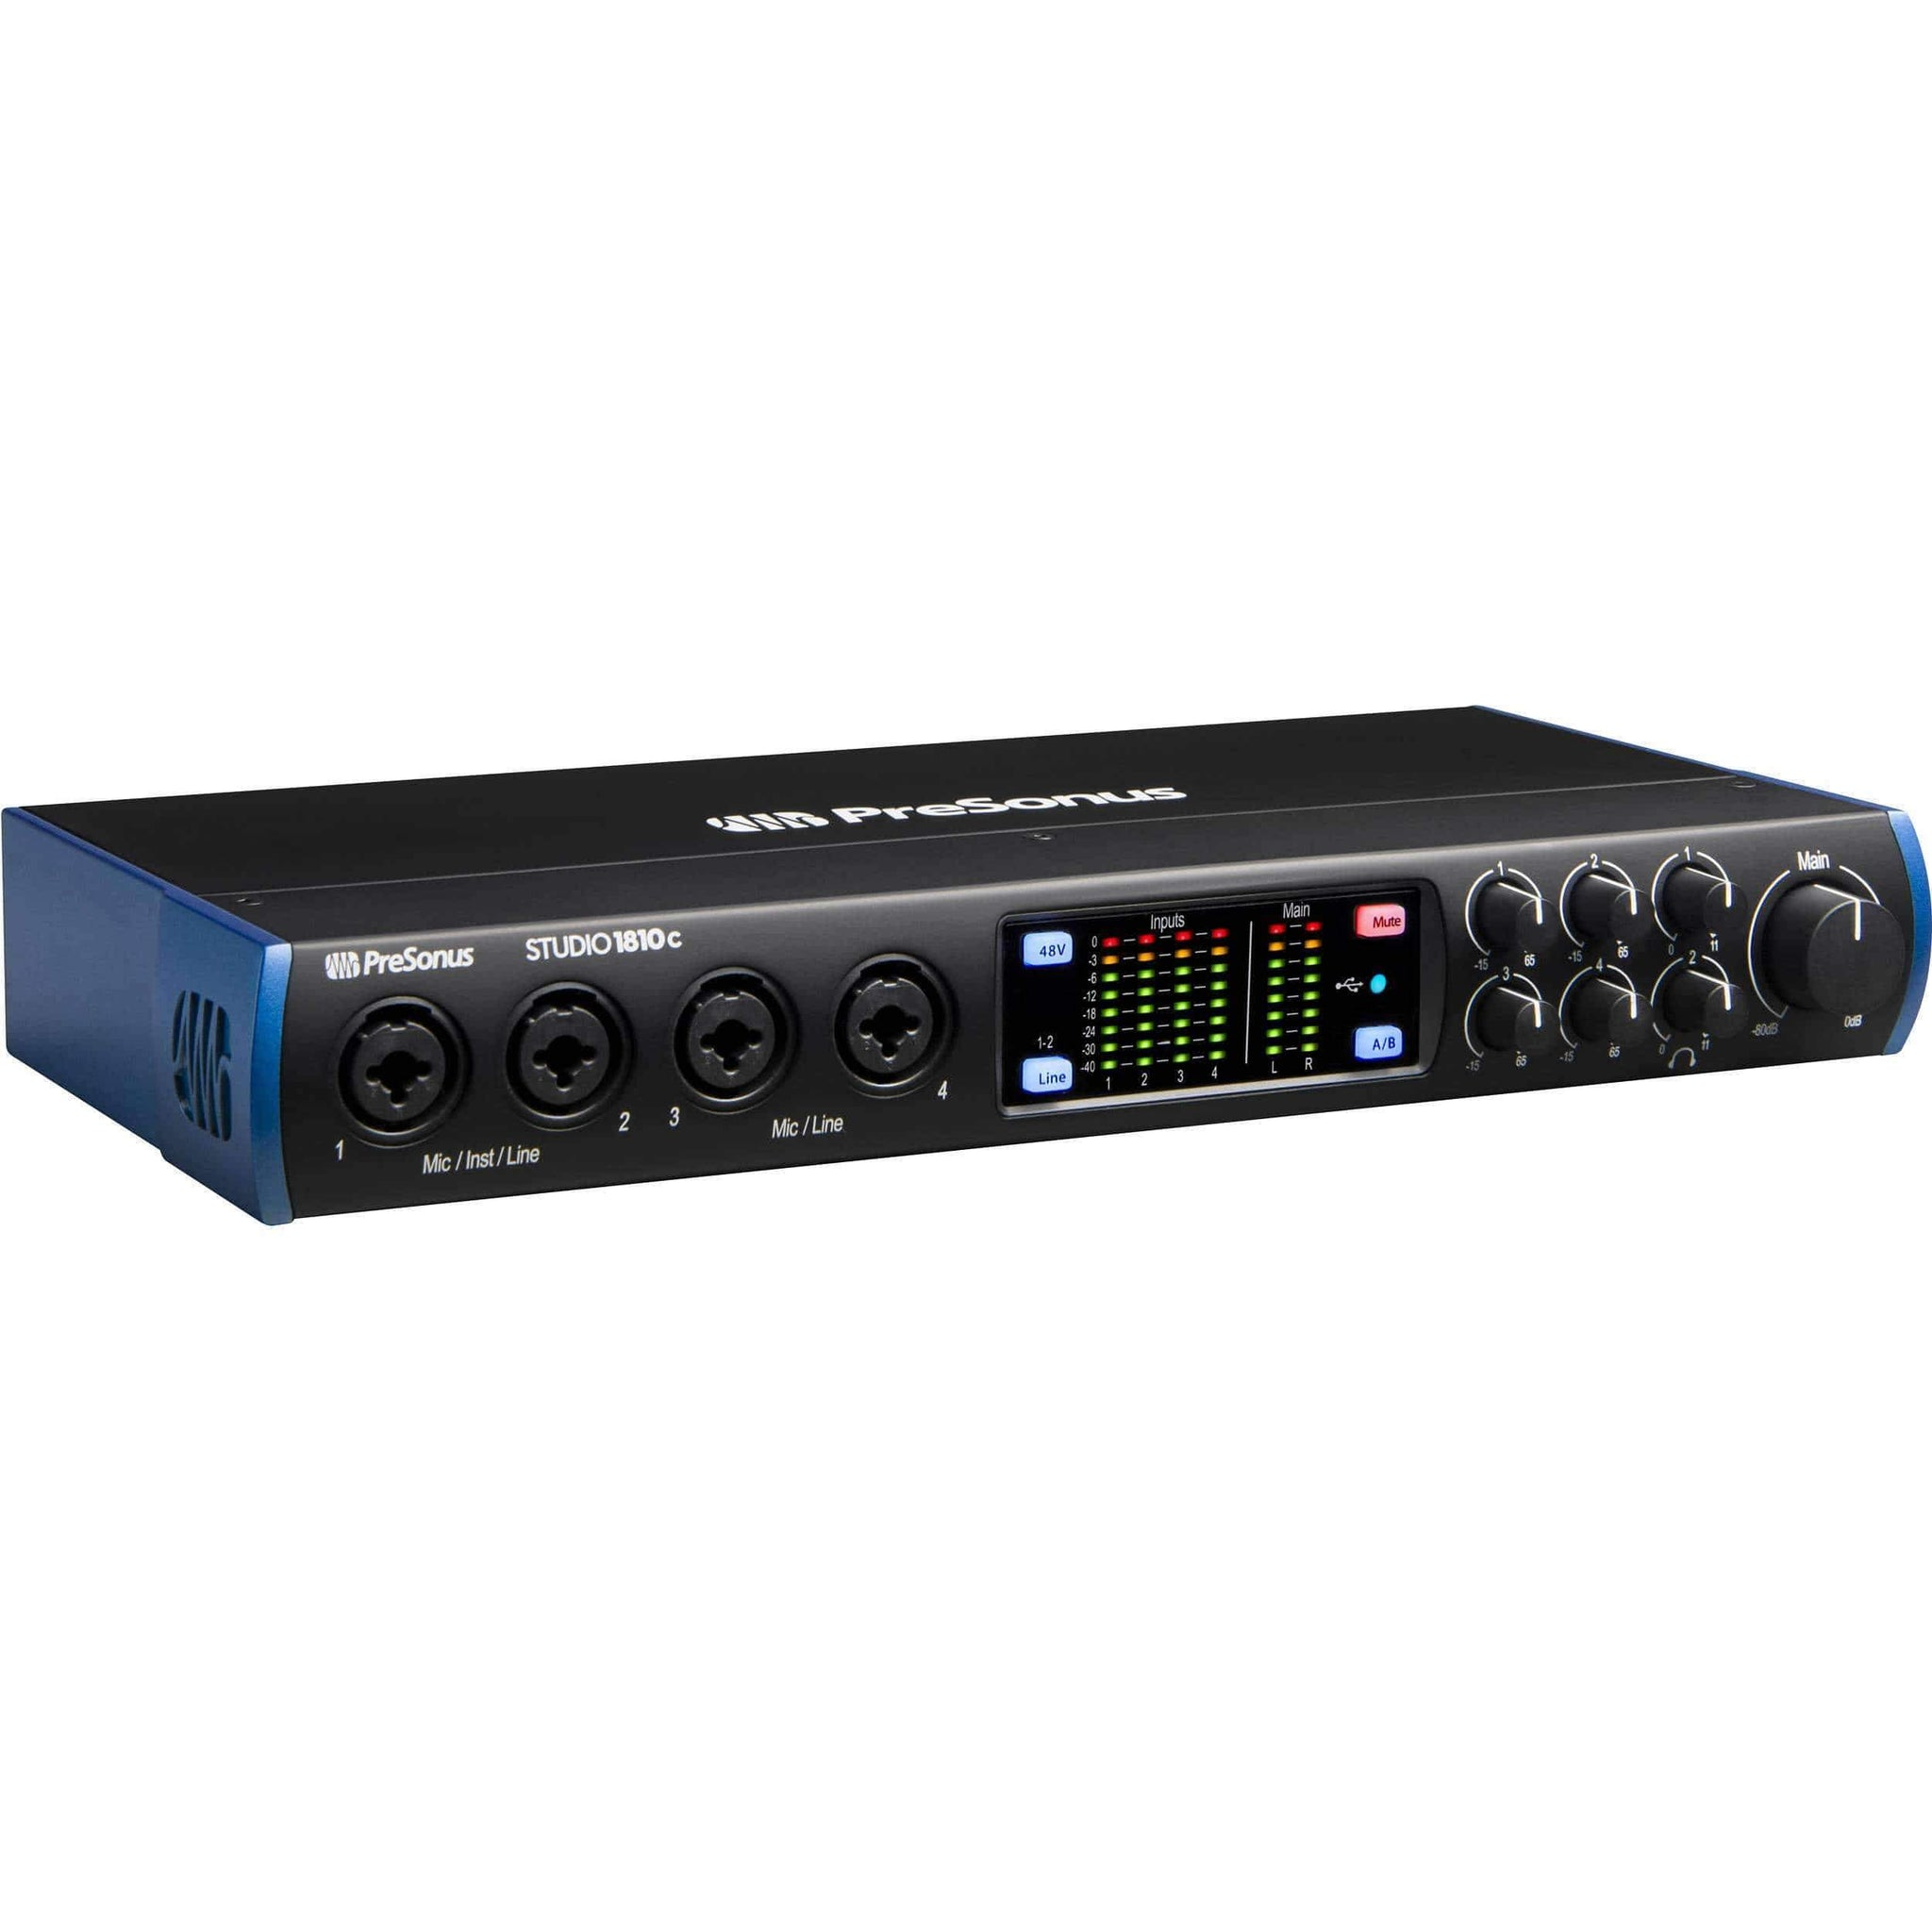 PreSonus Studio 1810c 18x8 USB Type-C Audio Interface